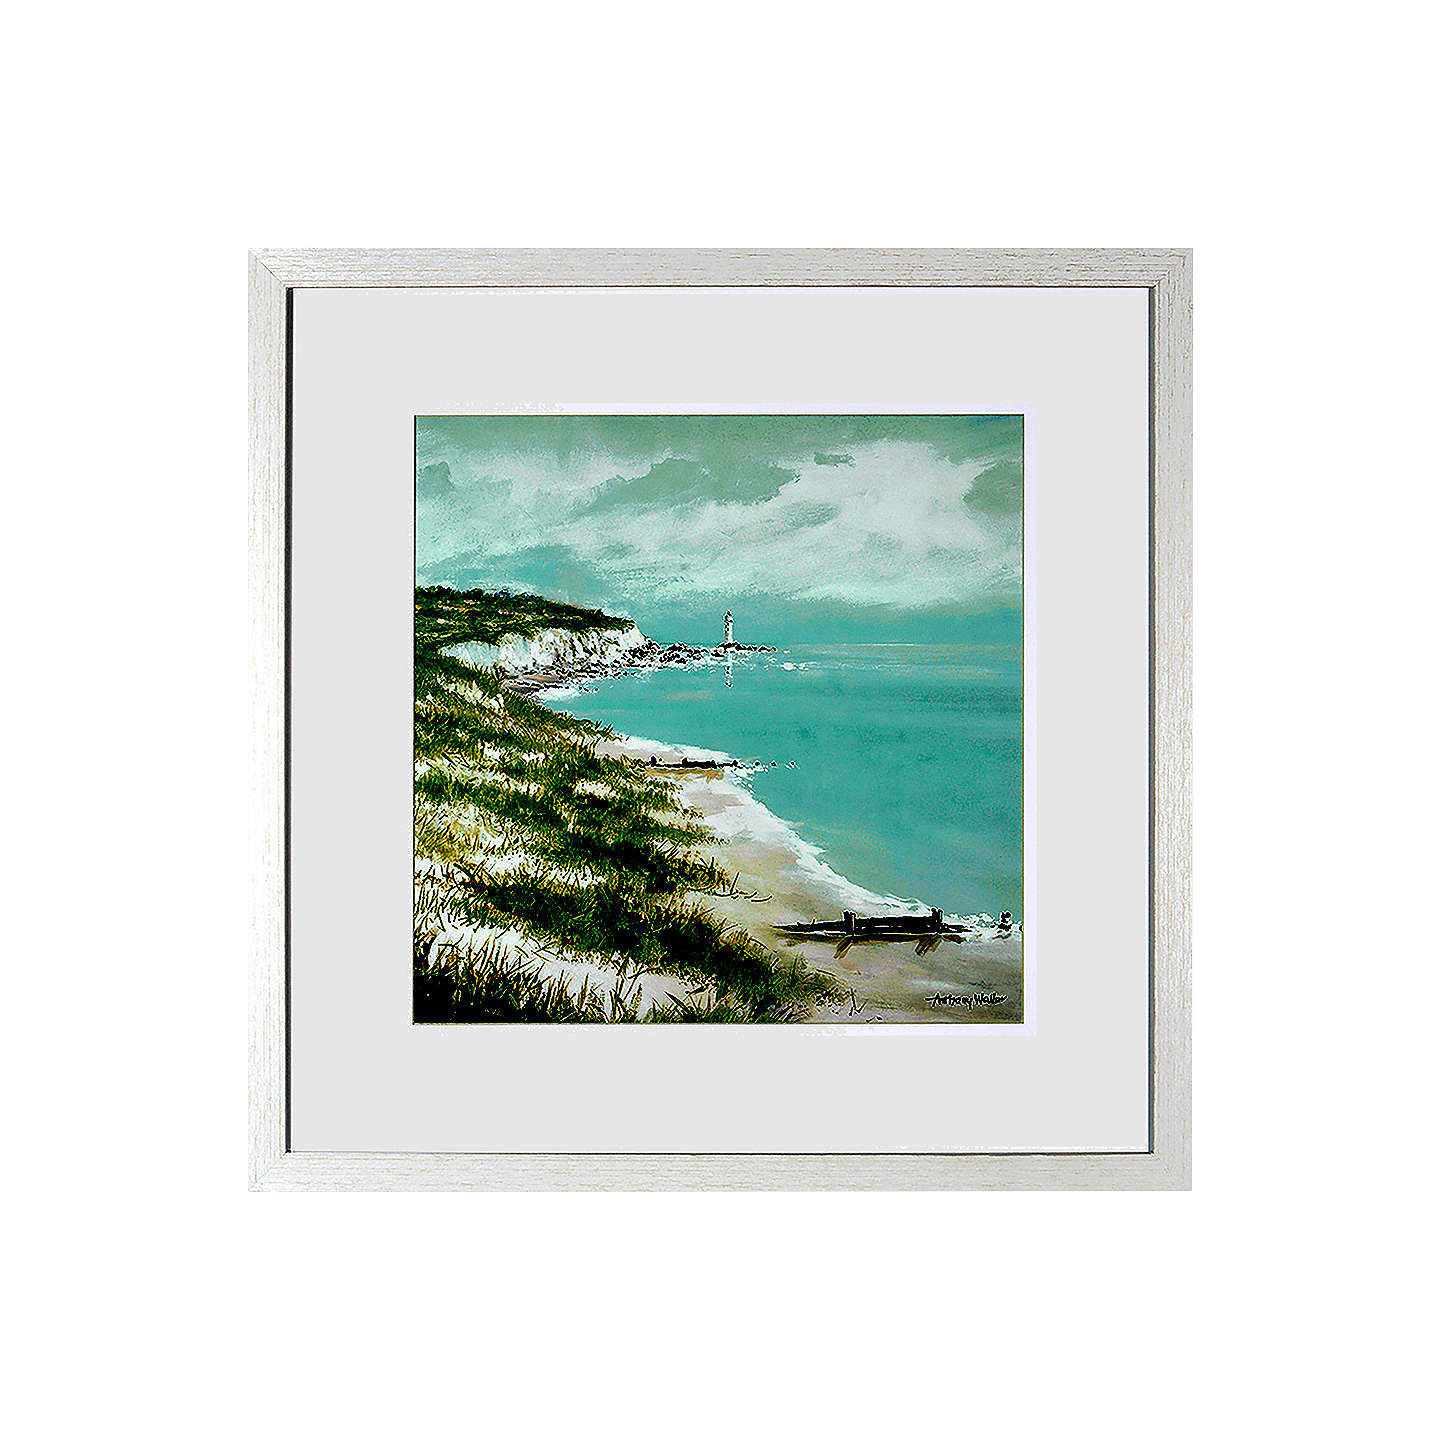 BuyAnthony Waller - Along The Coast Framed Print, 48 x 48cm Online at johnlewis.com